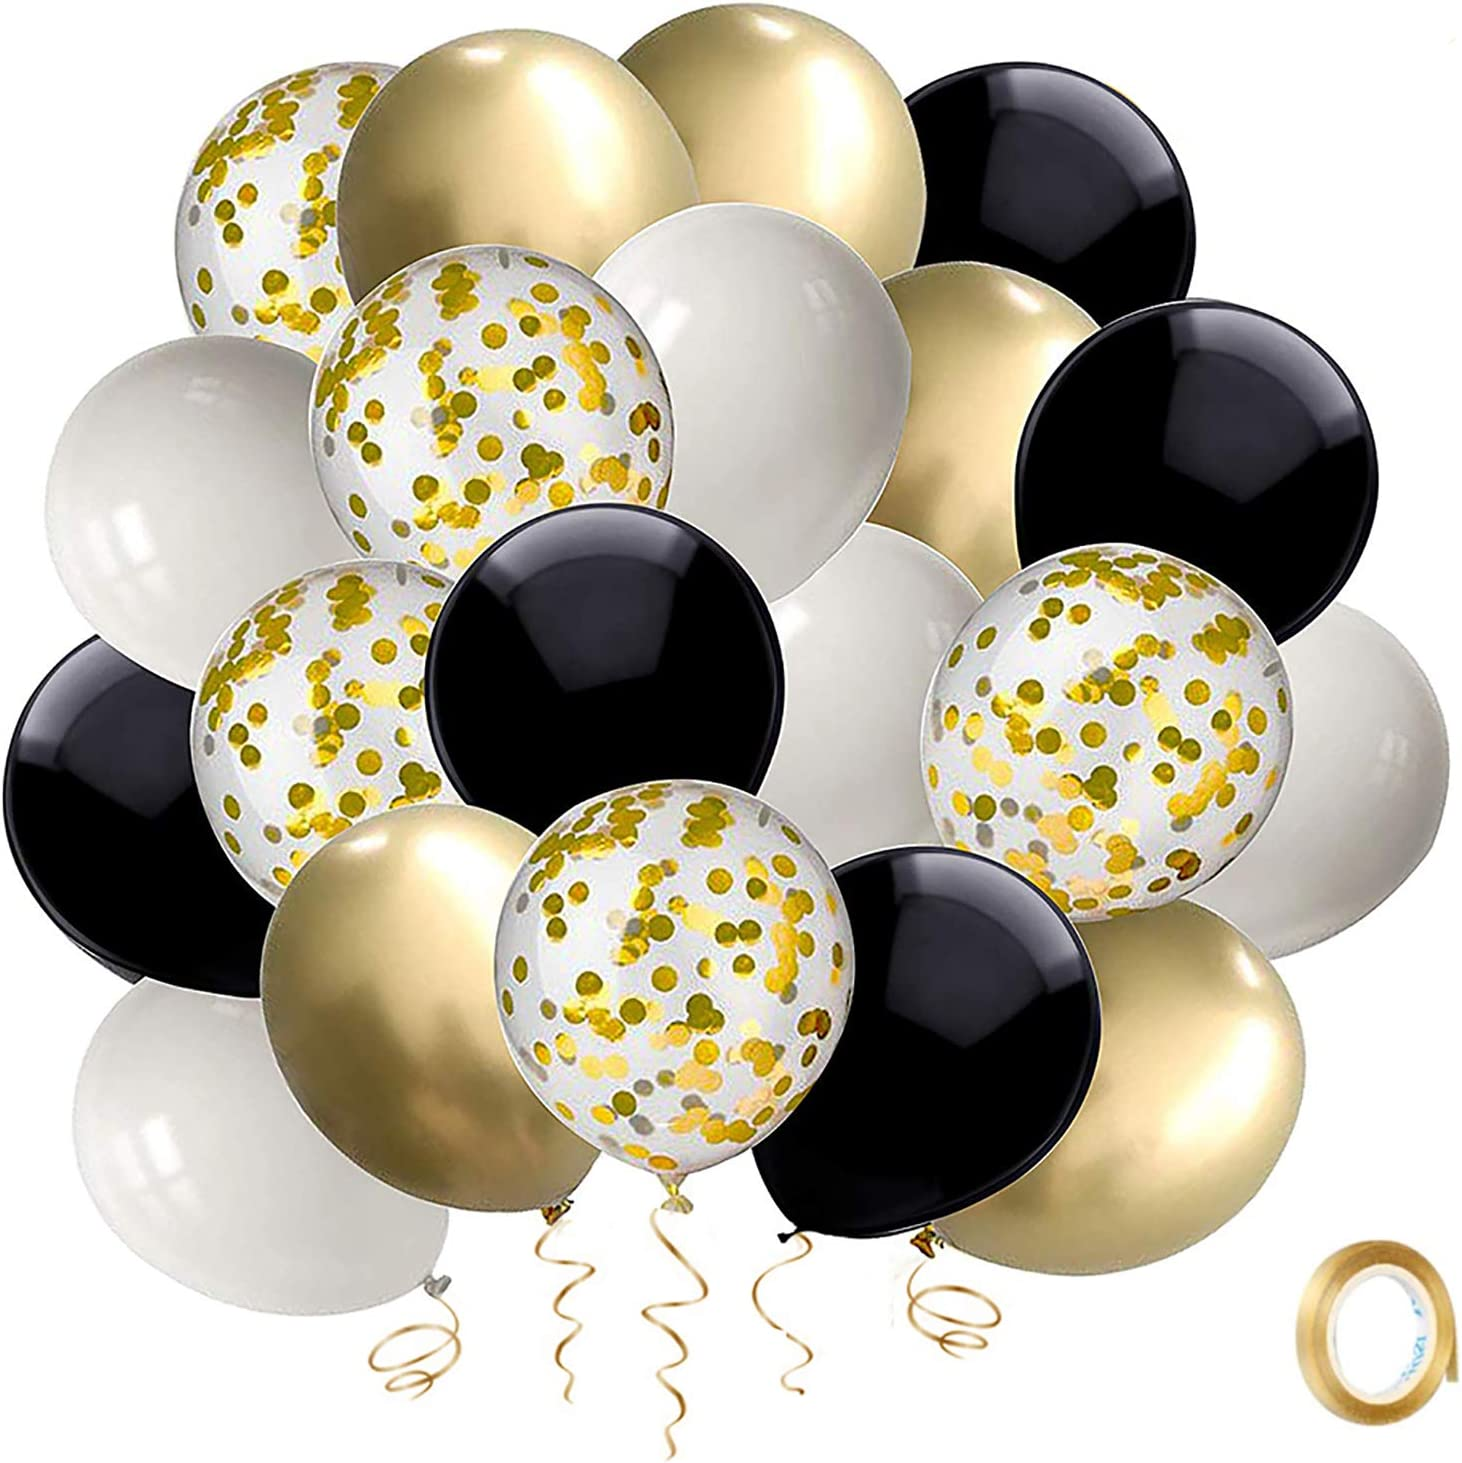 Black and Gold Confetti Balloons, 50 Pack 12inch White Latex Party Balloon Set with Gold Ribbon for Graduation Wedding Birthday Baby Shower Decorations